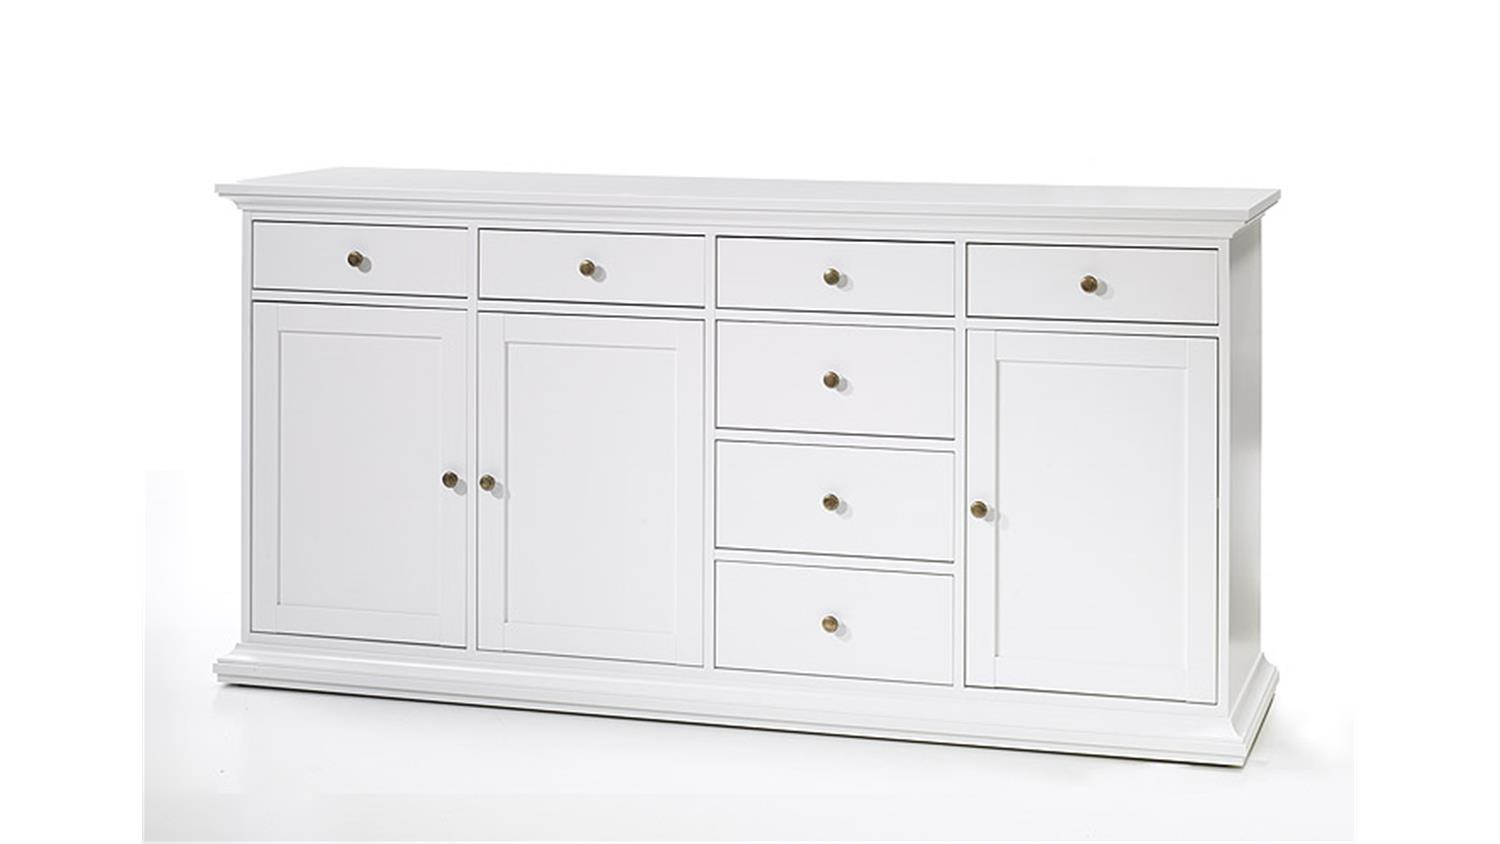 Kommode Landhaus Weiß Sideboard 3 Paris Kommode In Weiß Dekor Landhausstil 3 Türig